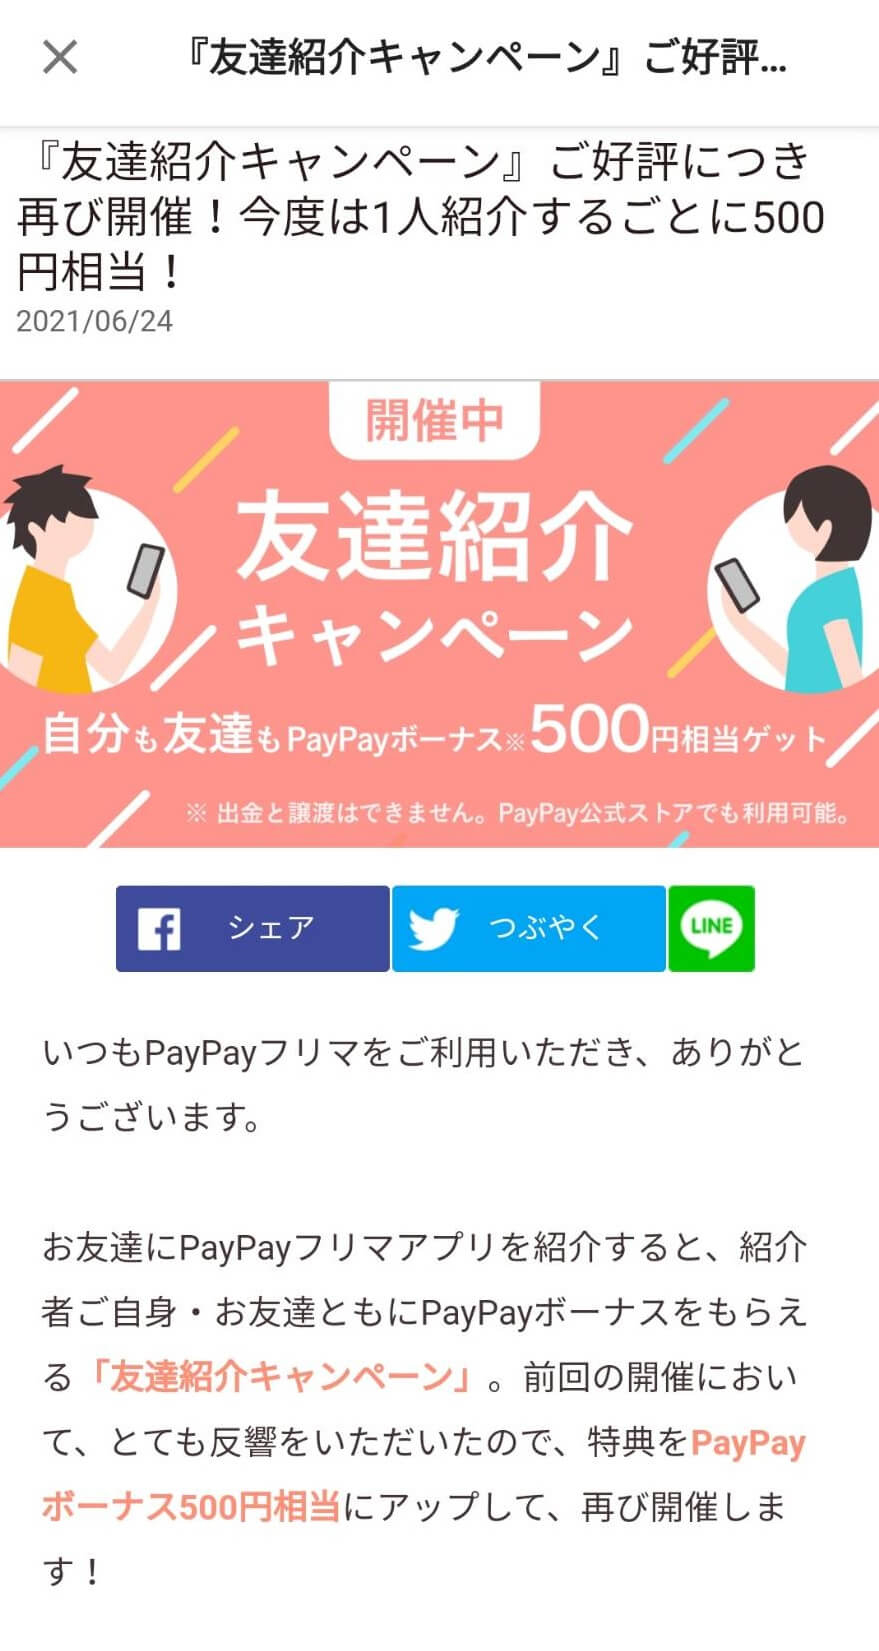 paypay-furima-cp-0731-2